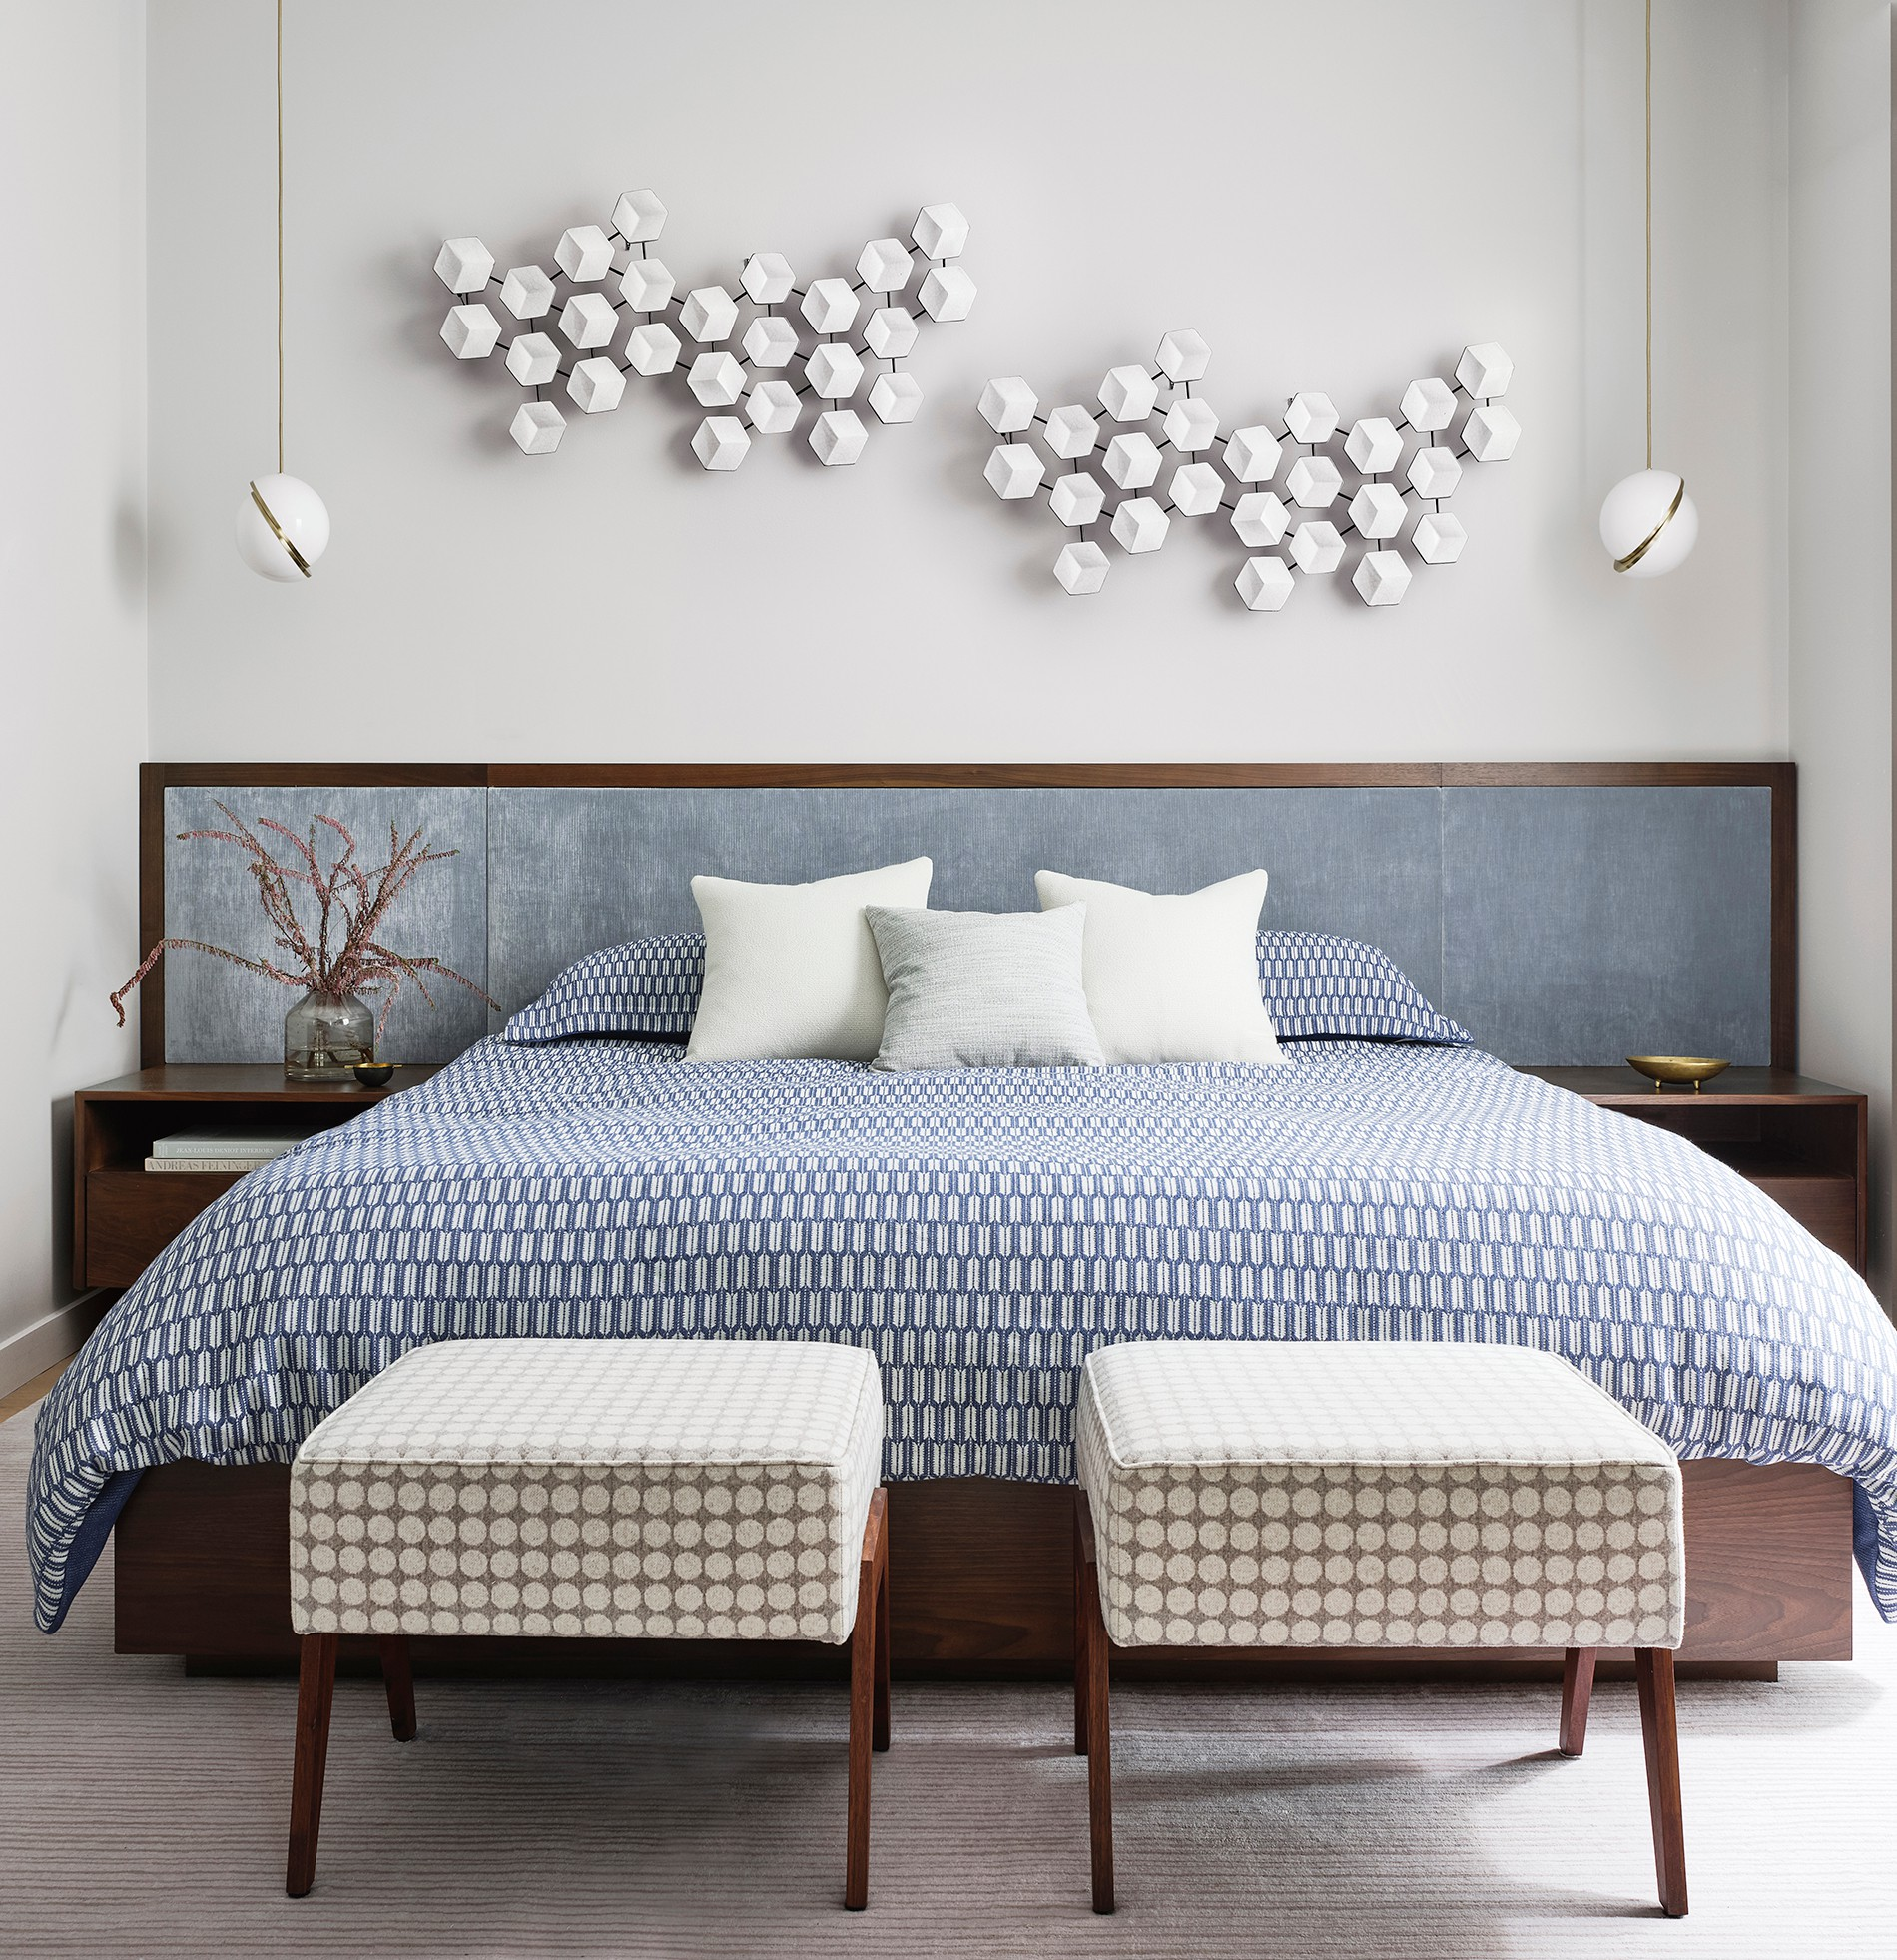 75 Beautiful Mid Century Modern Bedroom Pictures Ideas November 2020 Houzz